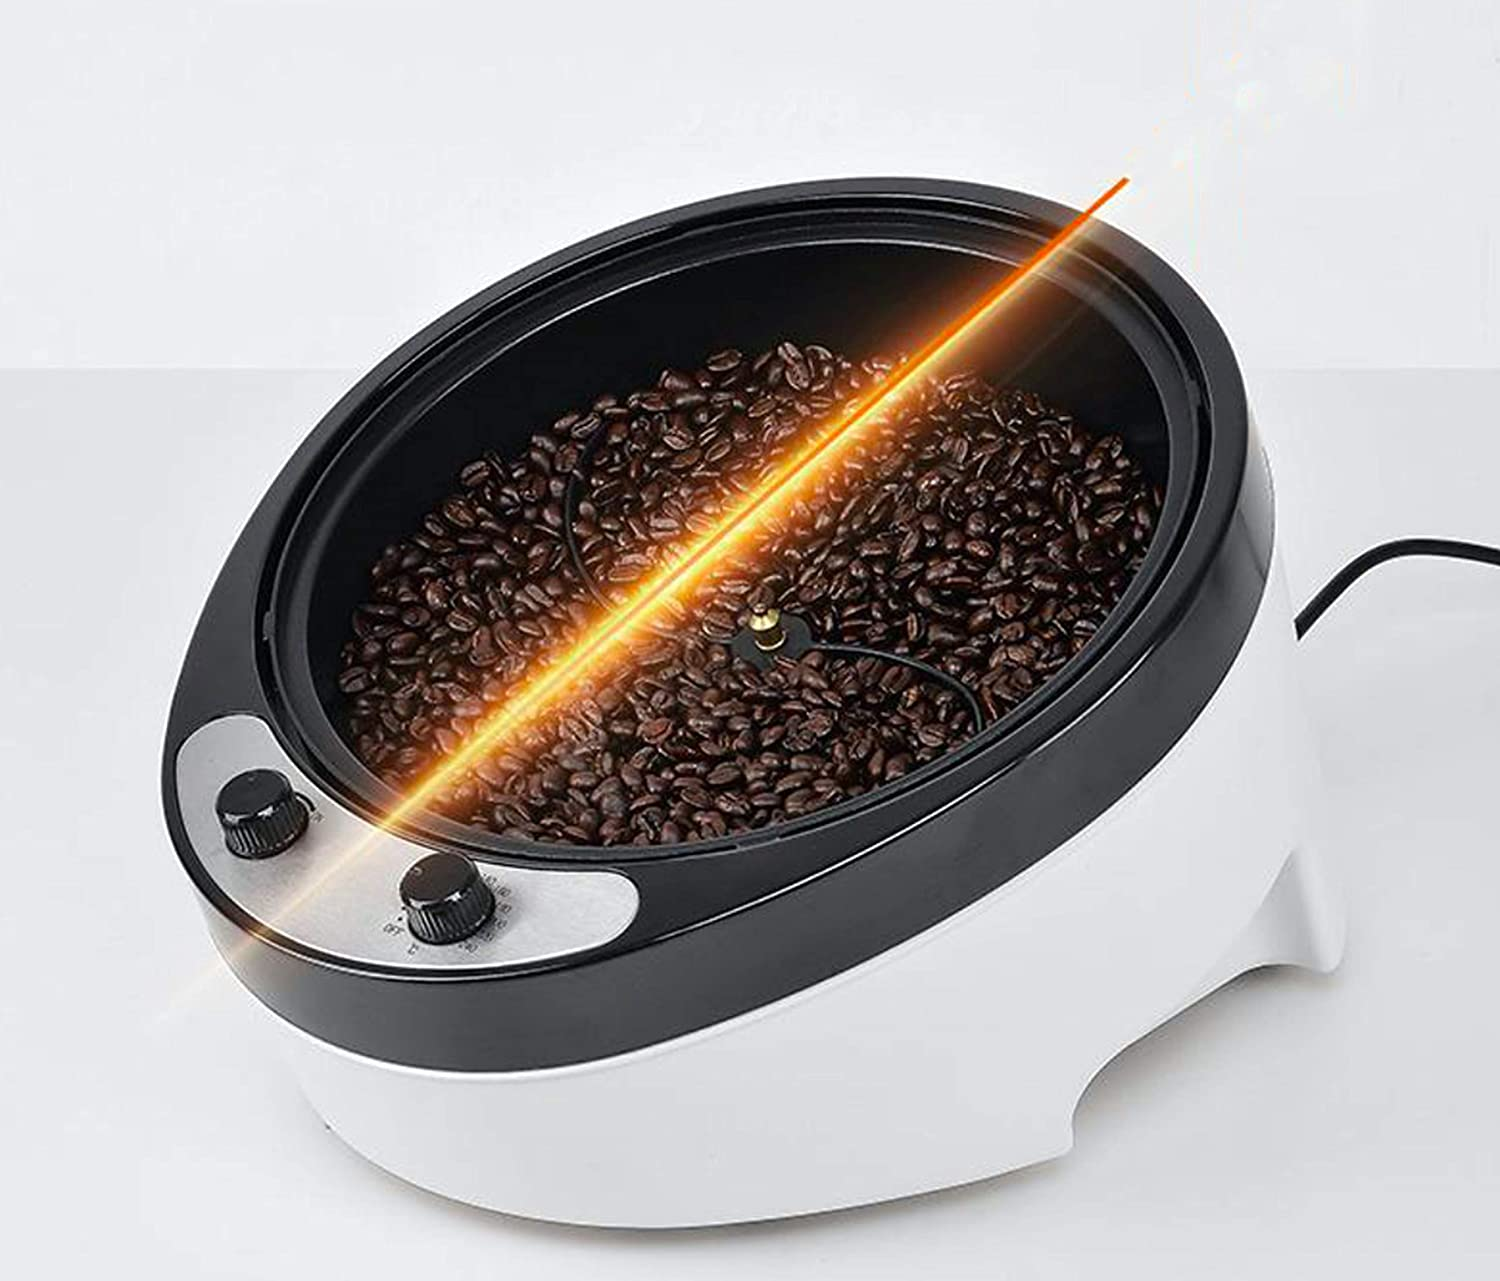 Coffee Roaster Machine 2000W Electric Coffee Bean Roaster Commercial Standard 900G Coffee Bean Roasting Baking Machine For Coffee Shop and Home Use, Popcorn, Peanuts, Chestnut Roaster,110V